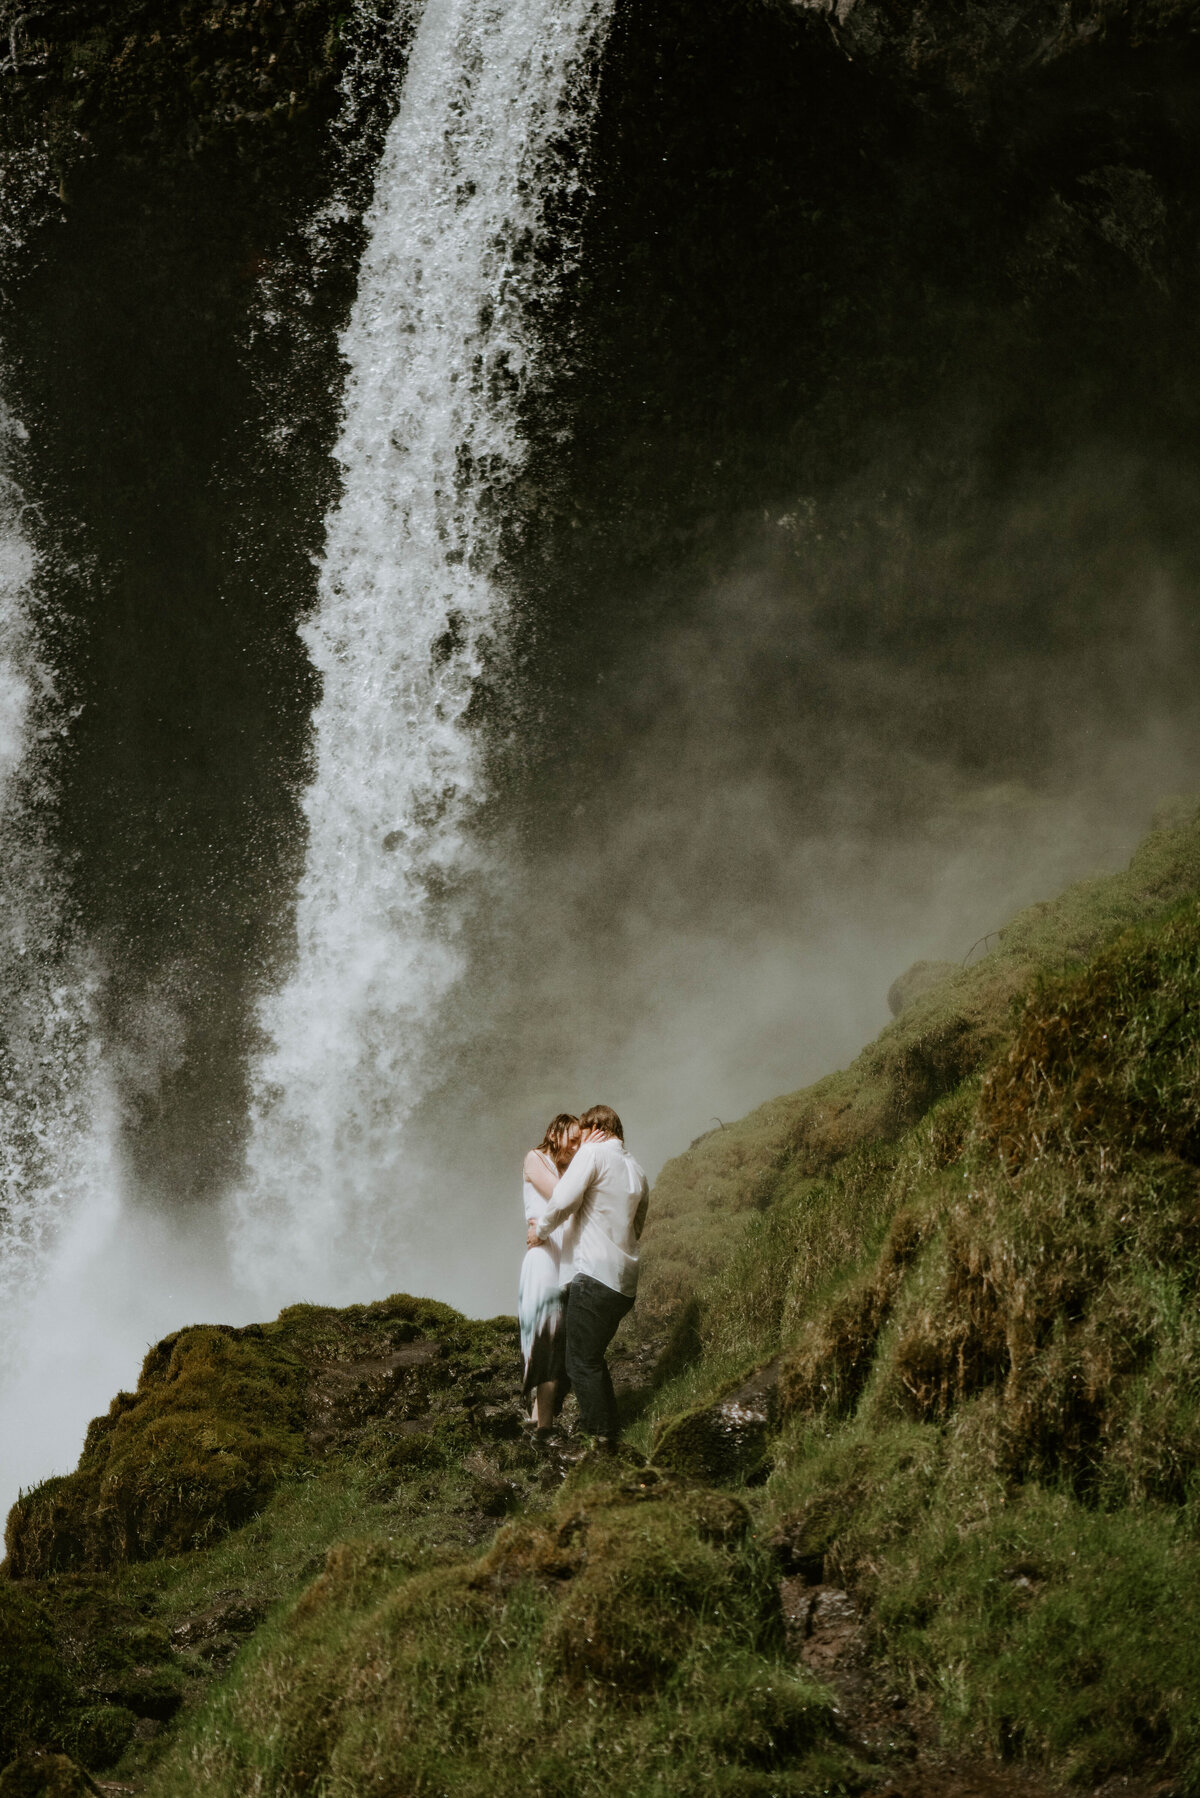 sahalie-falls-summer-oregon-photoshoot-adventure-photographer-bend-couple-forest-outfits-elopement-wedding8594